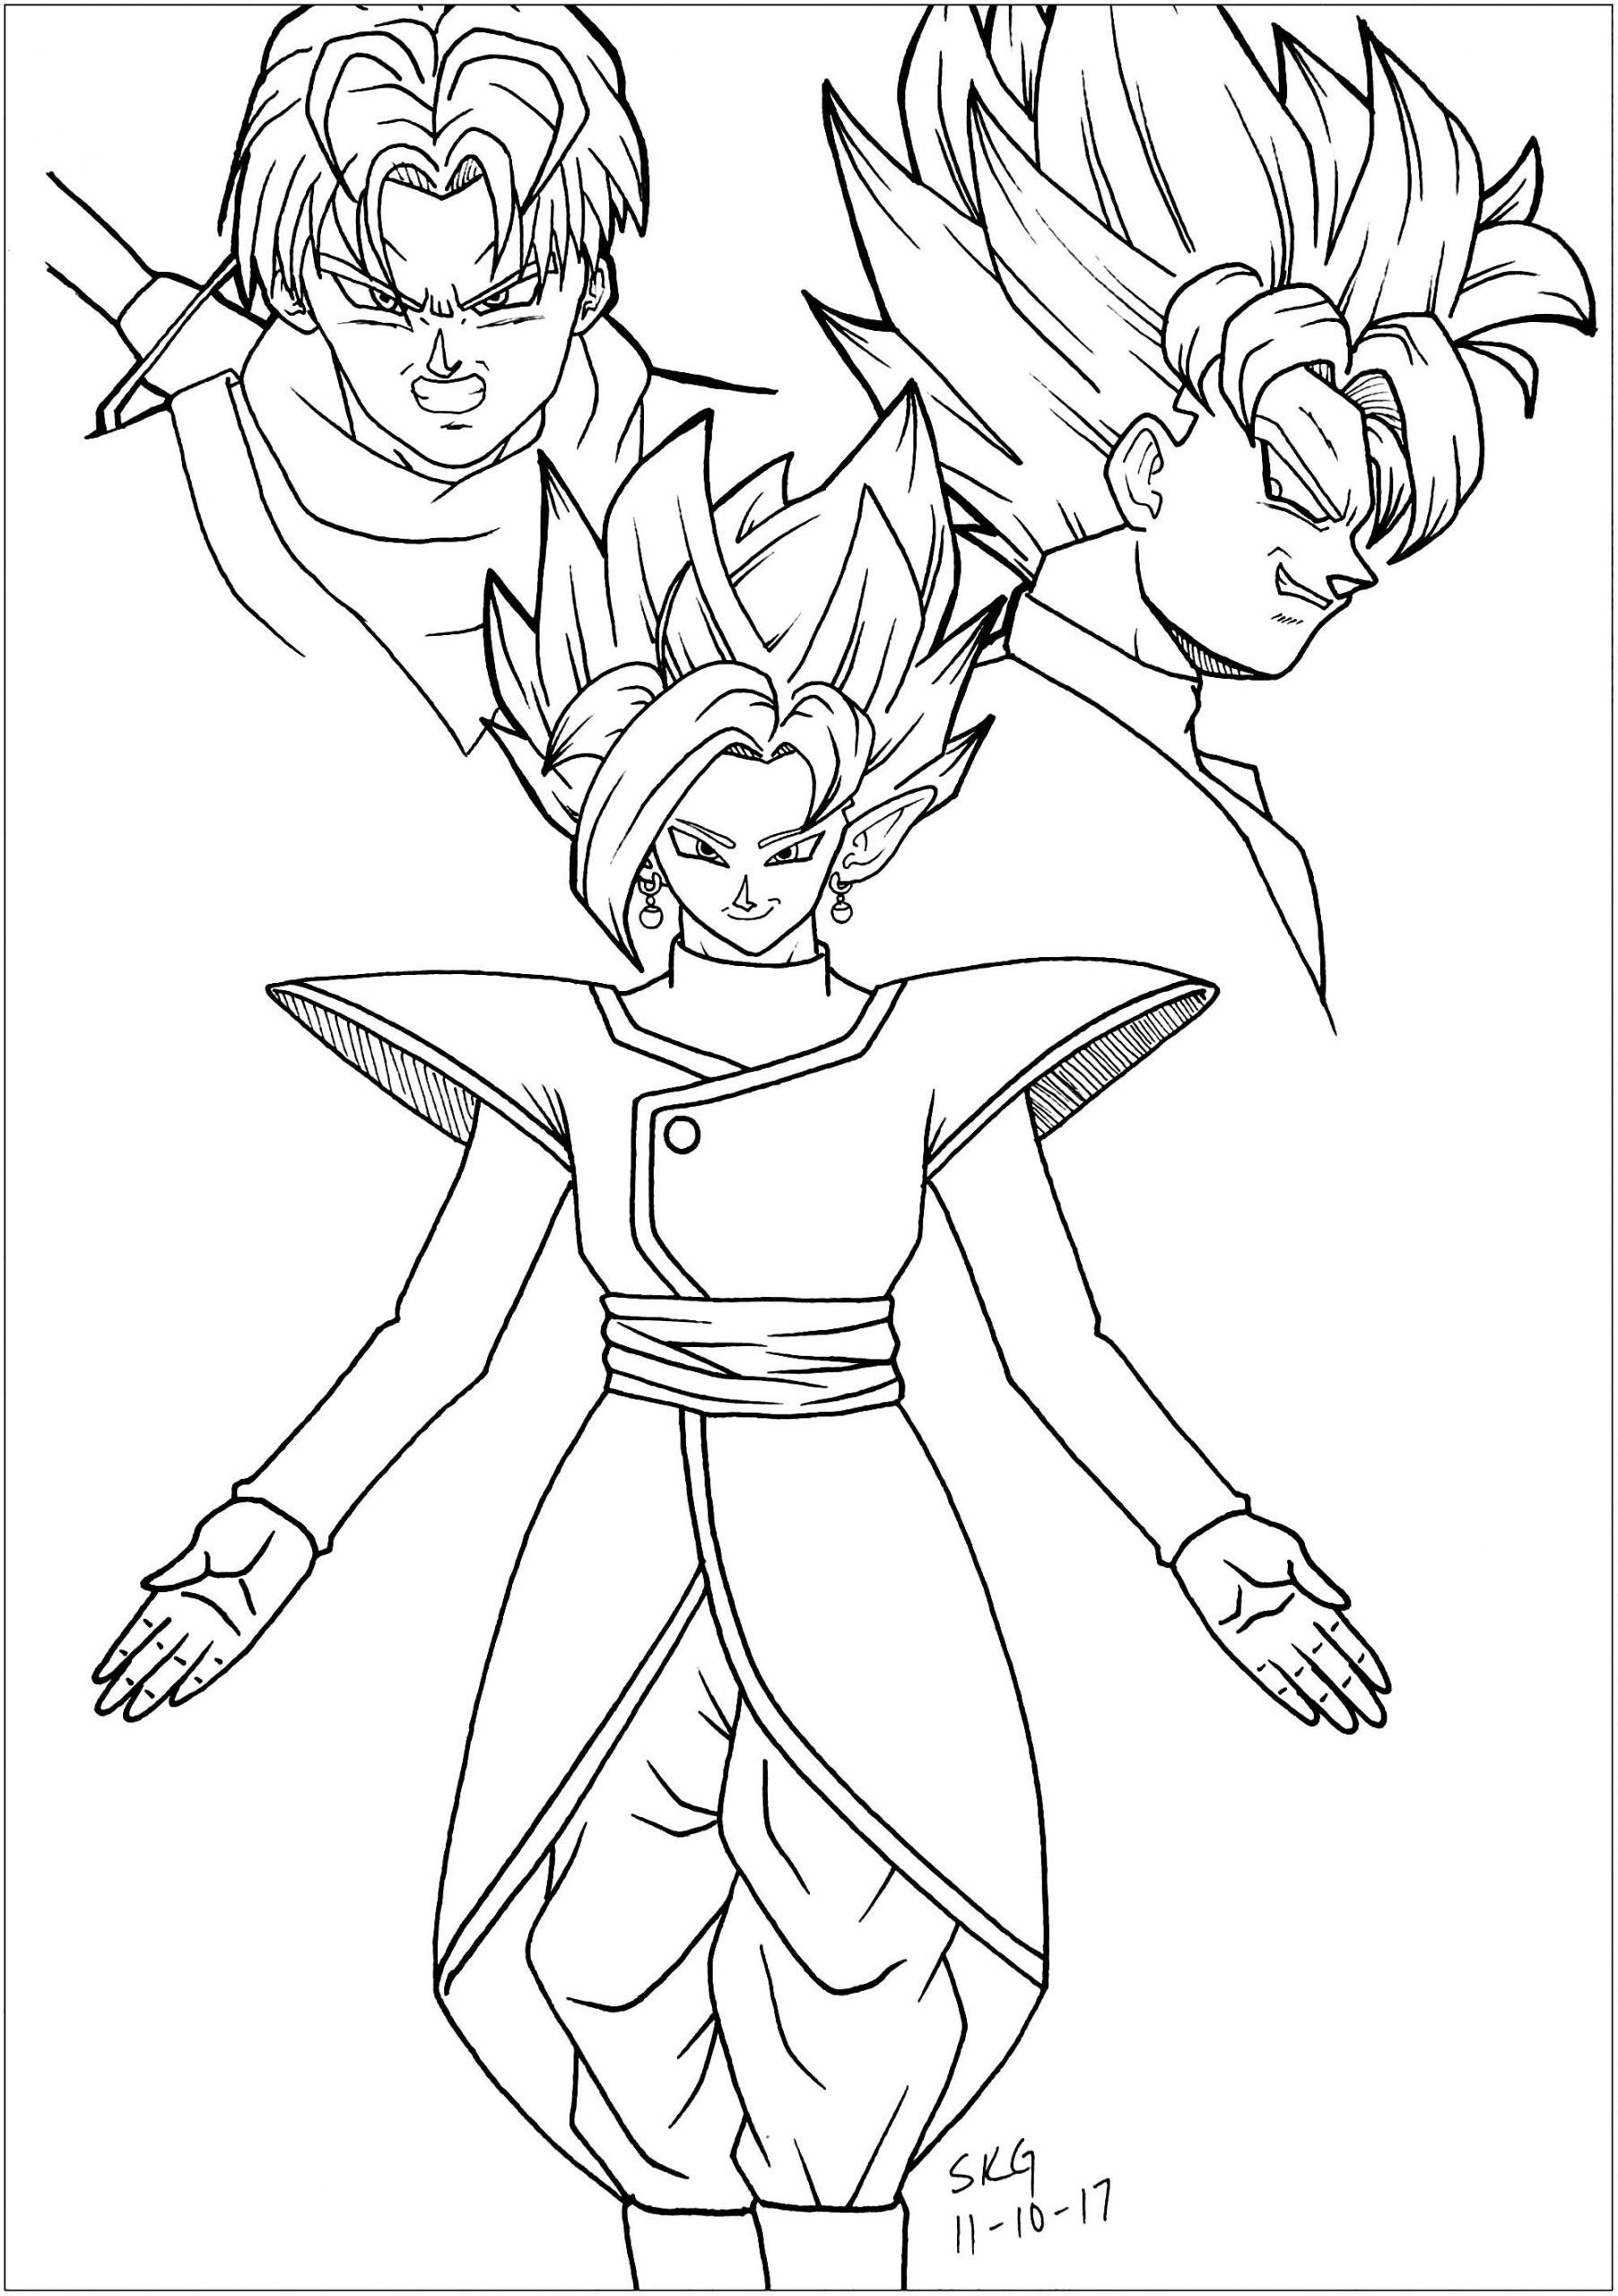 Dragon Ball Z Coloring Pages Black Goku Trunks And Zamasu Dragon Ball Z Kids Coloring Dragon Coloring Page Super Coloring Pages Cartoon Coloring Pages